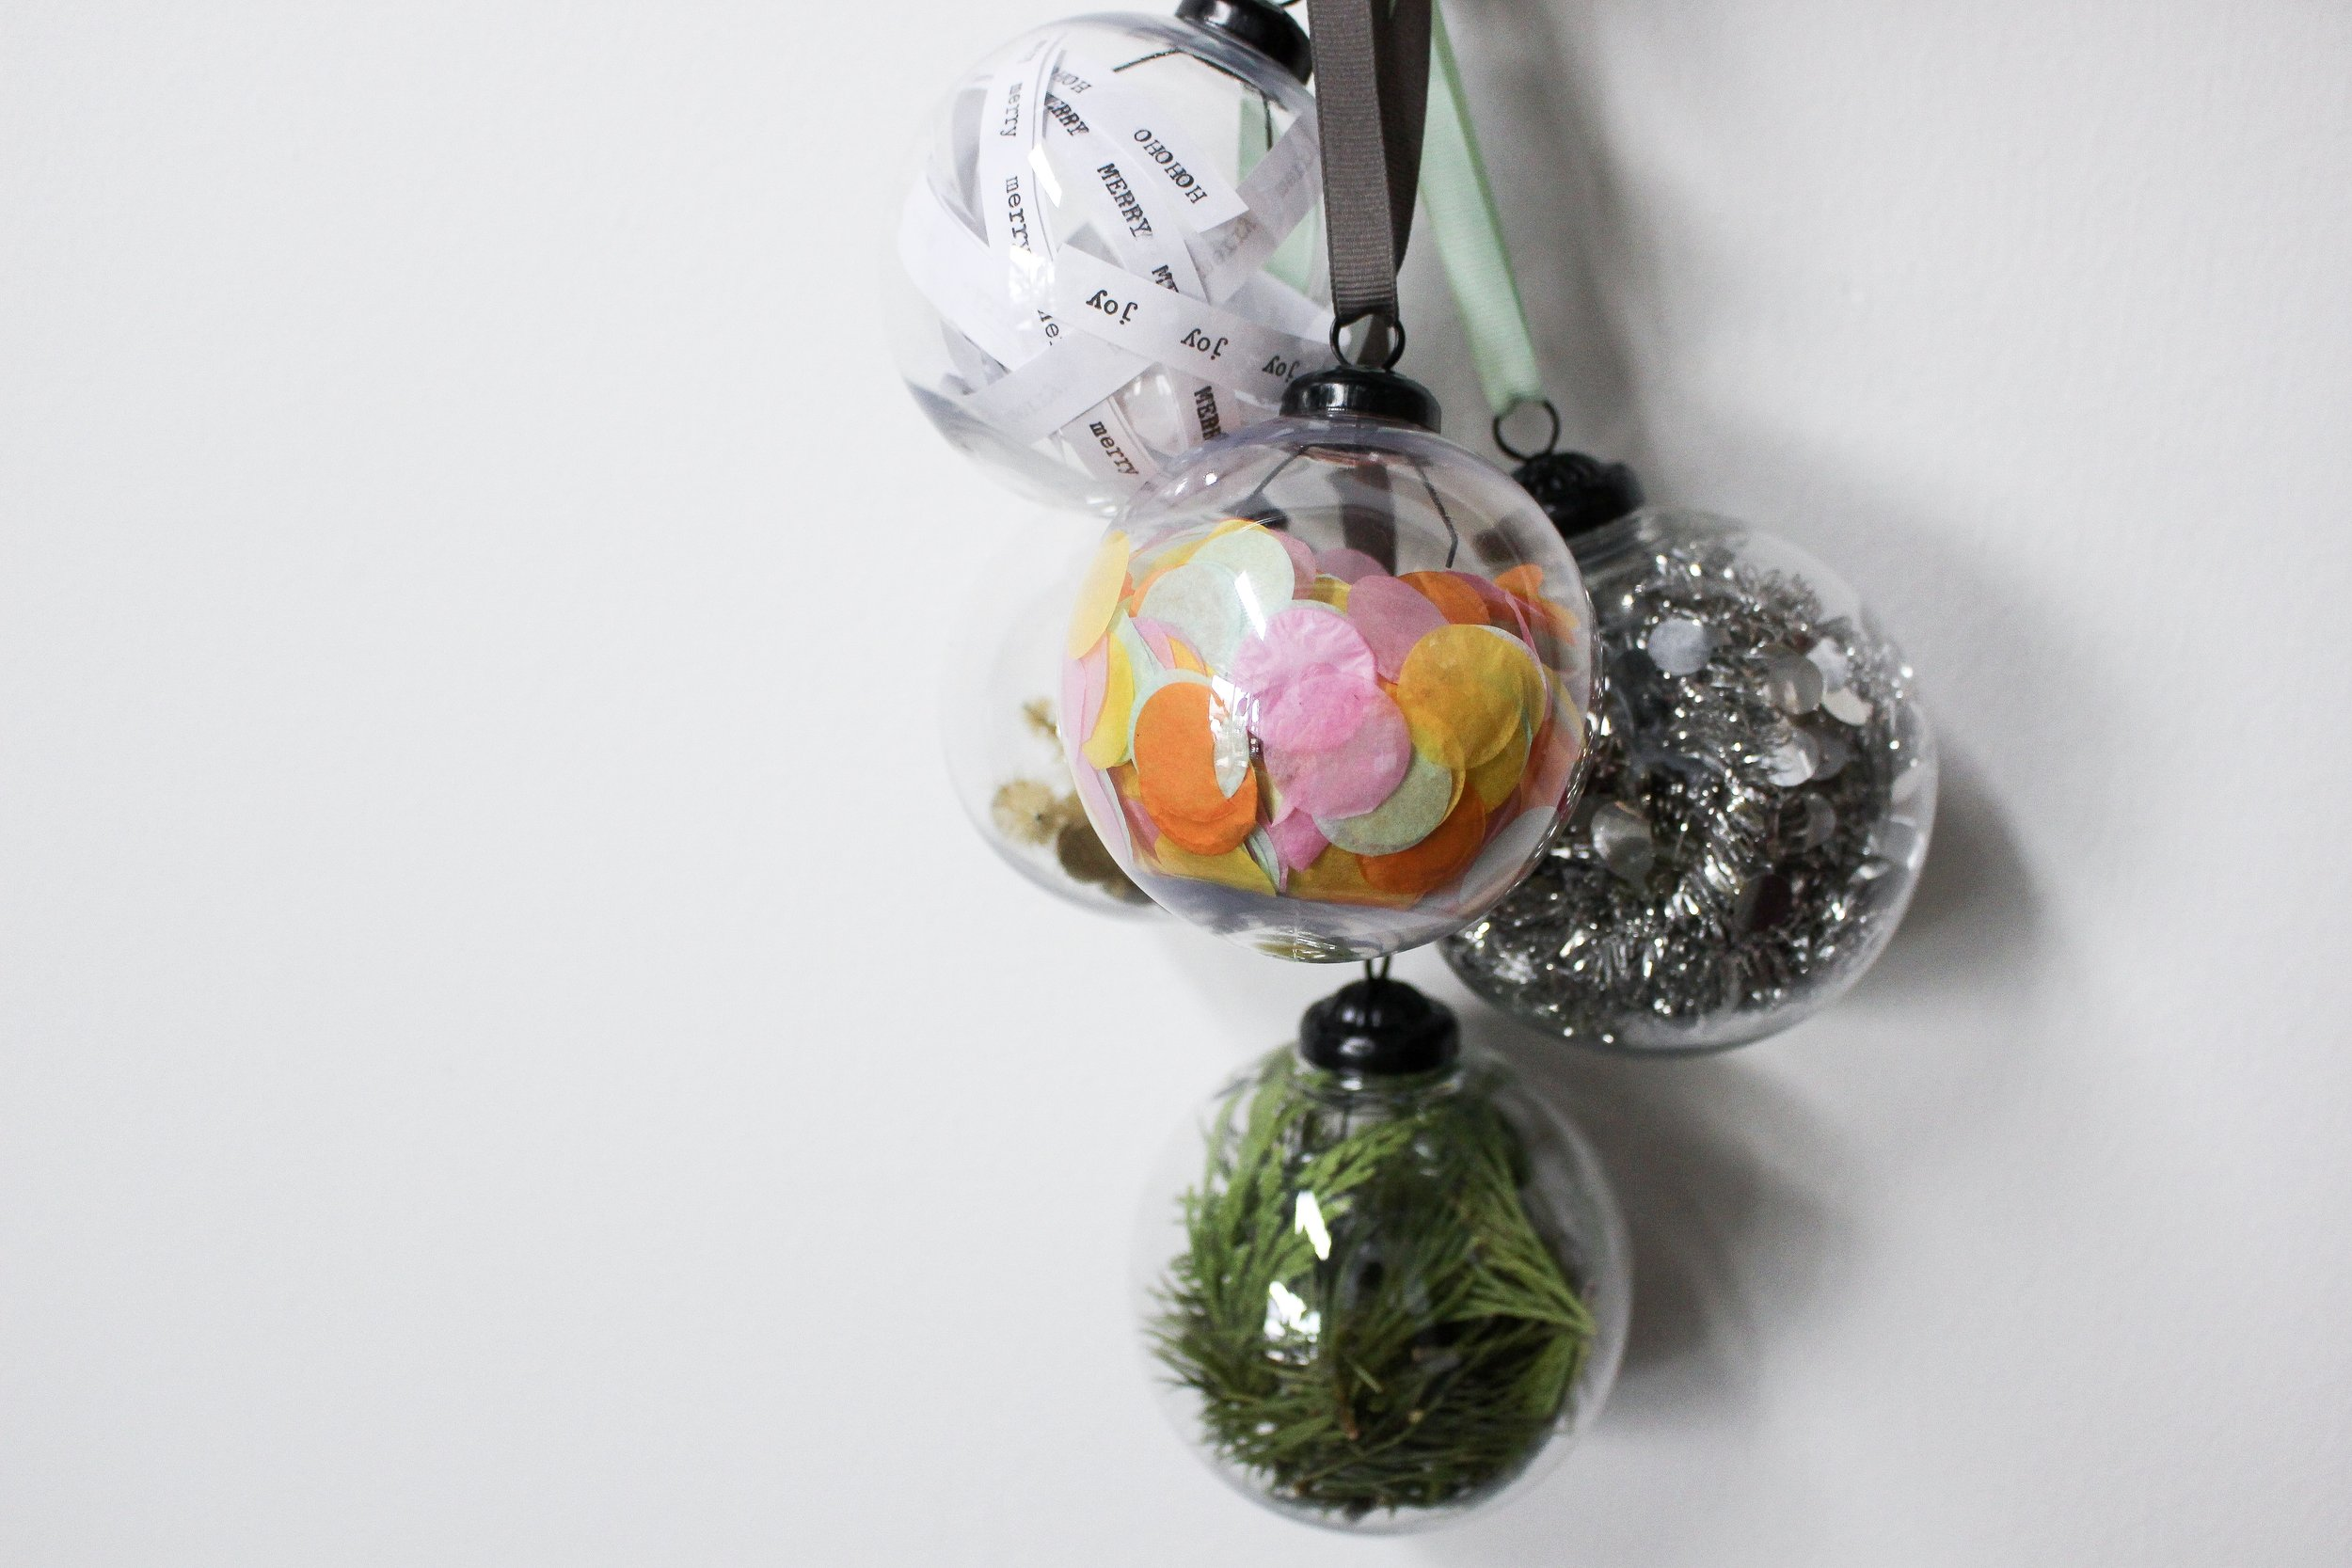 The Paper + Craft Pantry Blog: The finished product of our 5 simple D.I.Y. ornaments.